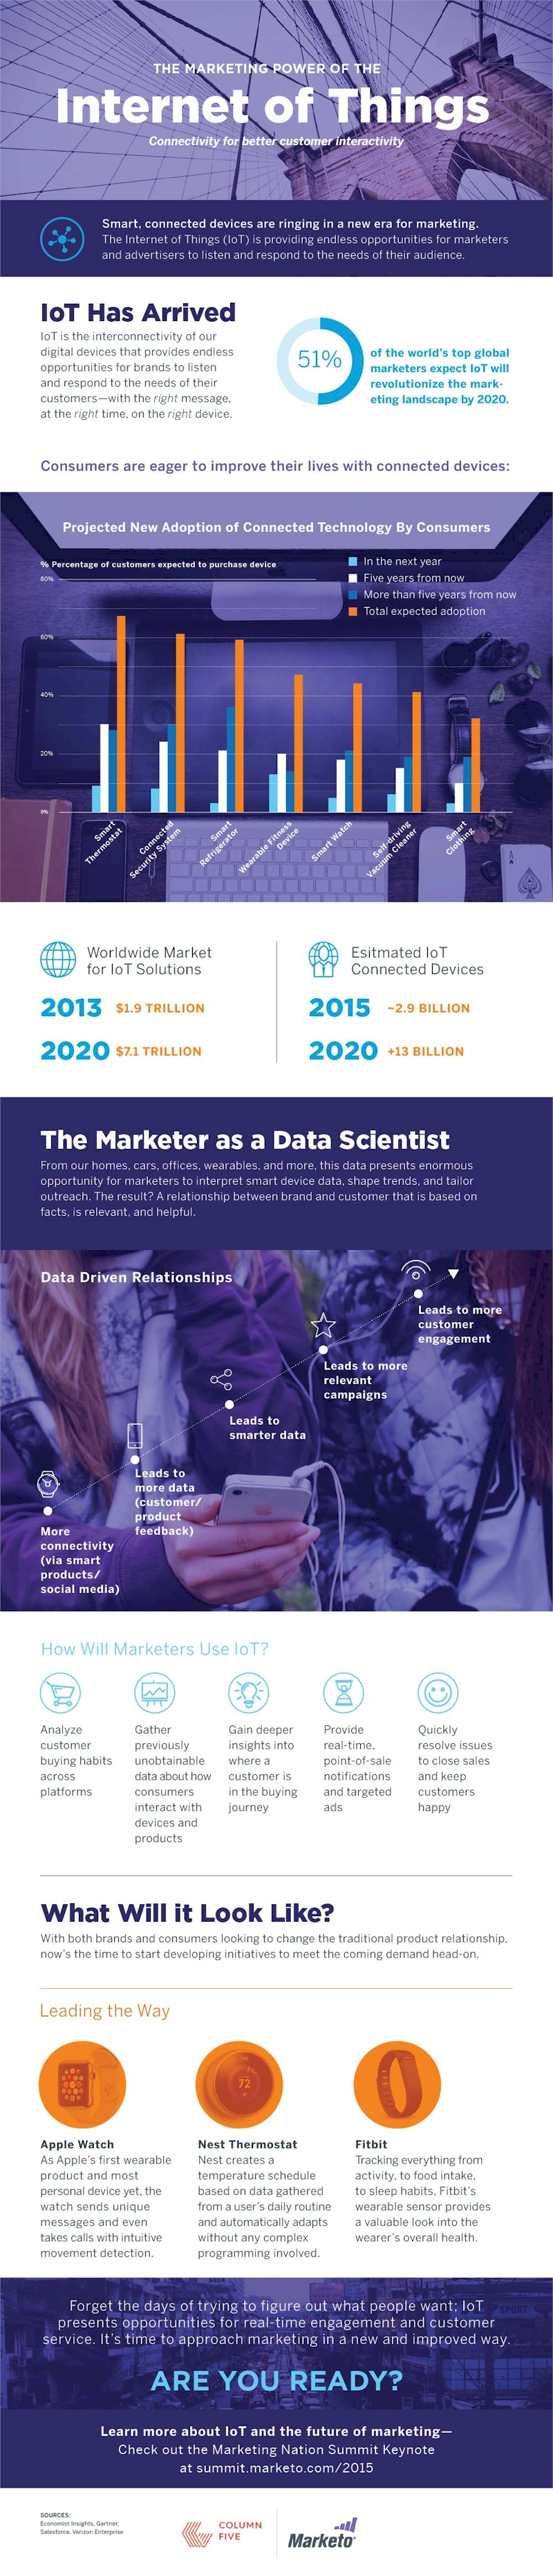 Marketing & The Internet of Things [INFOGRAPHIC]